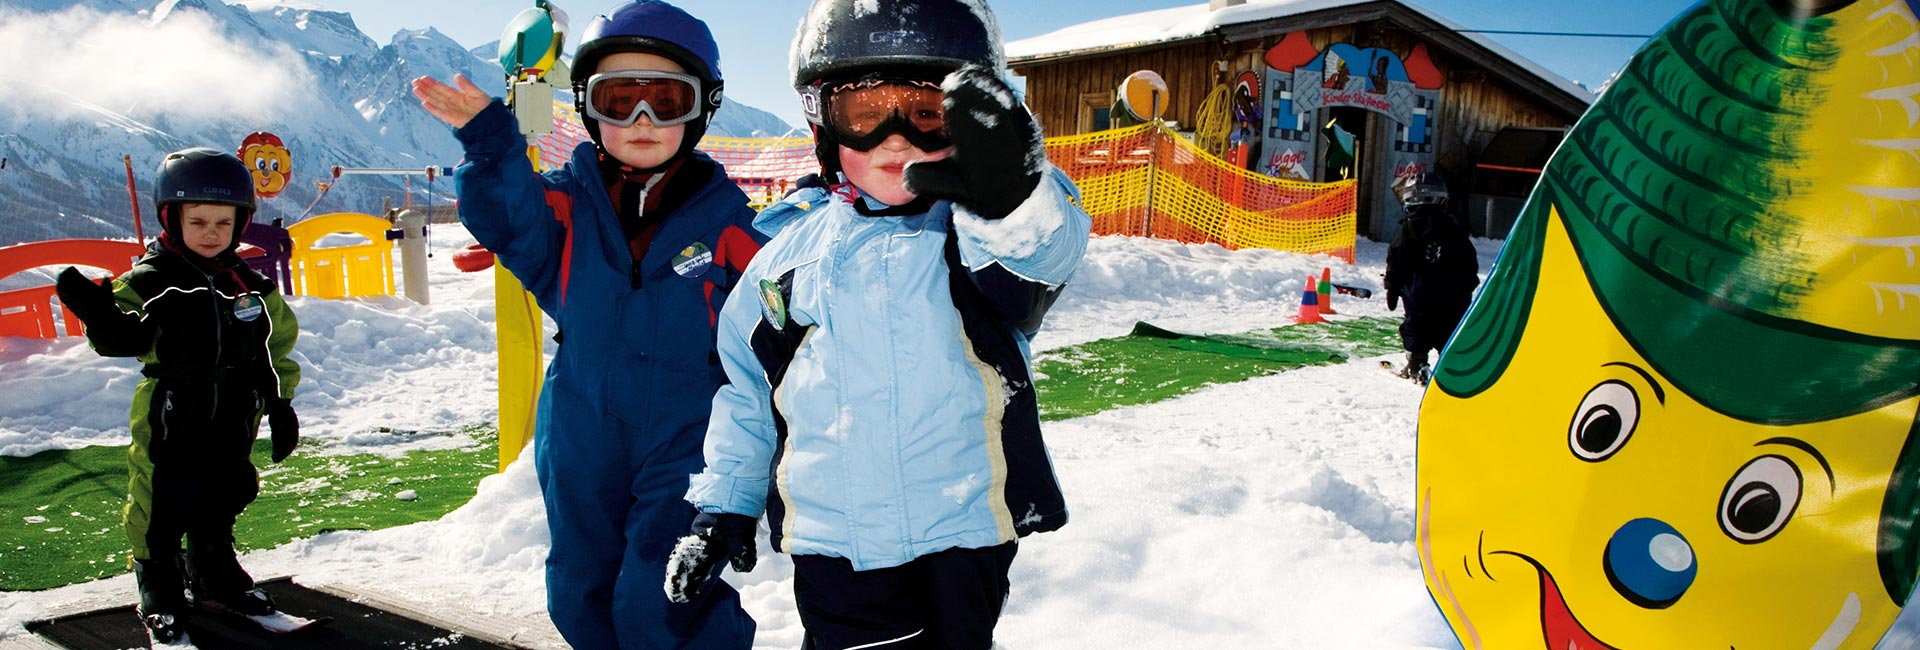 Children learn the Fun of Winter Sports